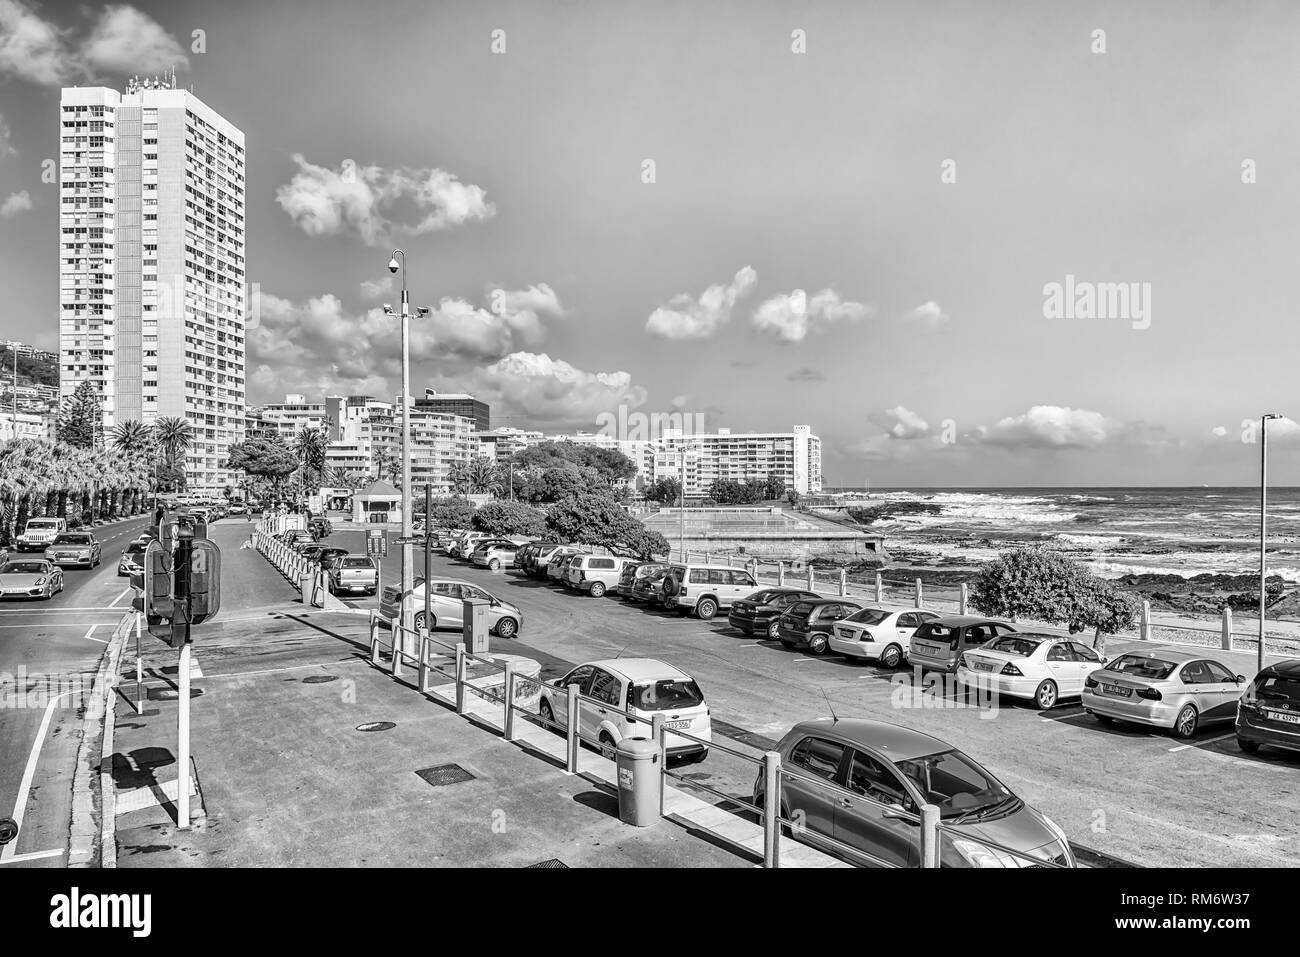 CAPE TOWN, SOUTH AFRICA, AUGUST 17, 2018: A view of Beach Road and Sea Point in Cape Town. The Atlantic Ocean, buildings and vehicles are visible.  Mo - Stock Image